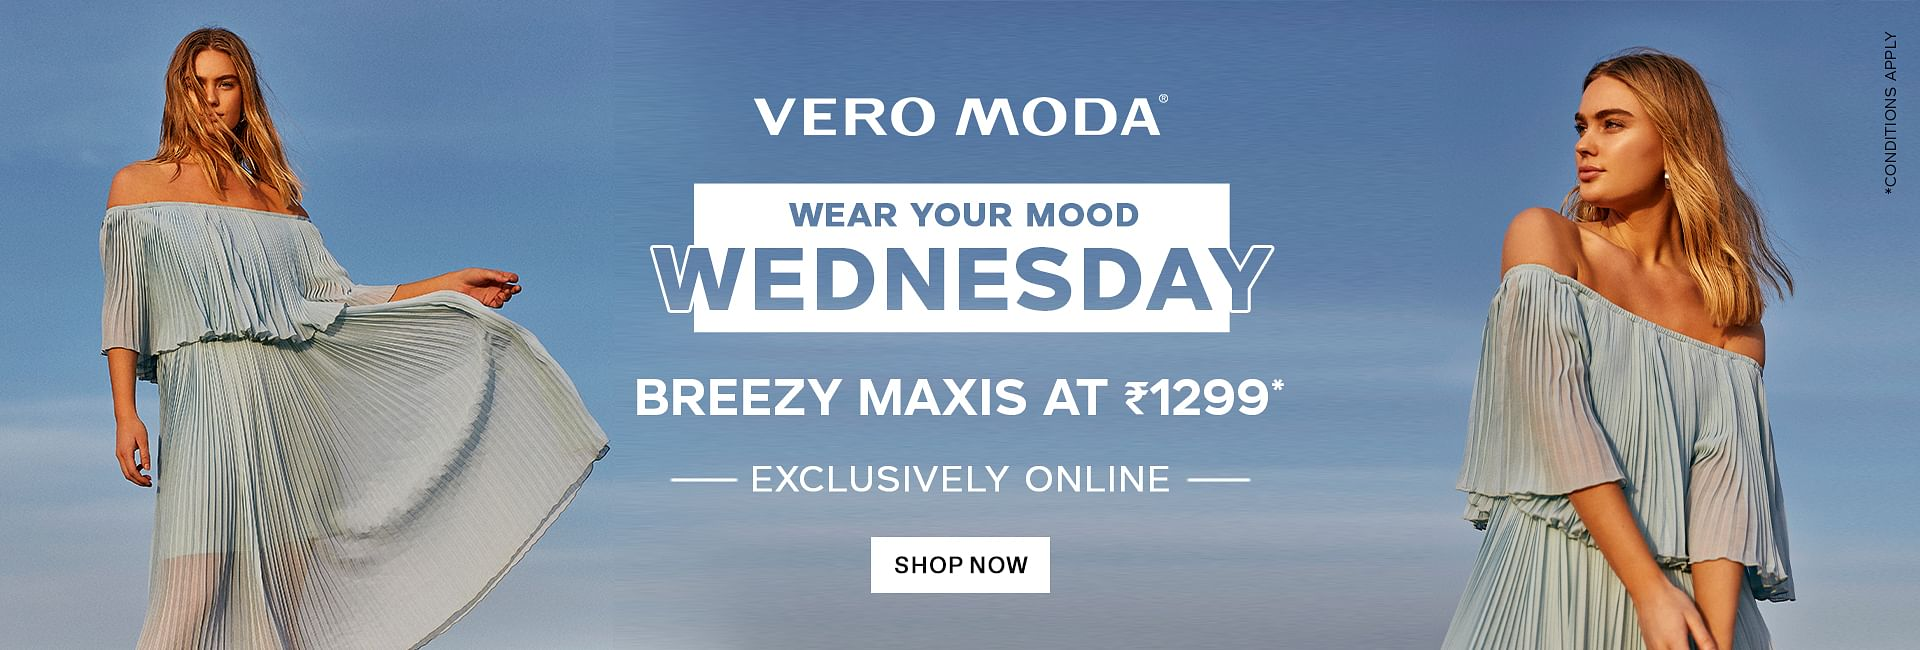 Veromoda Wednesday Sale